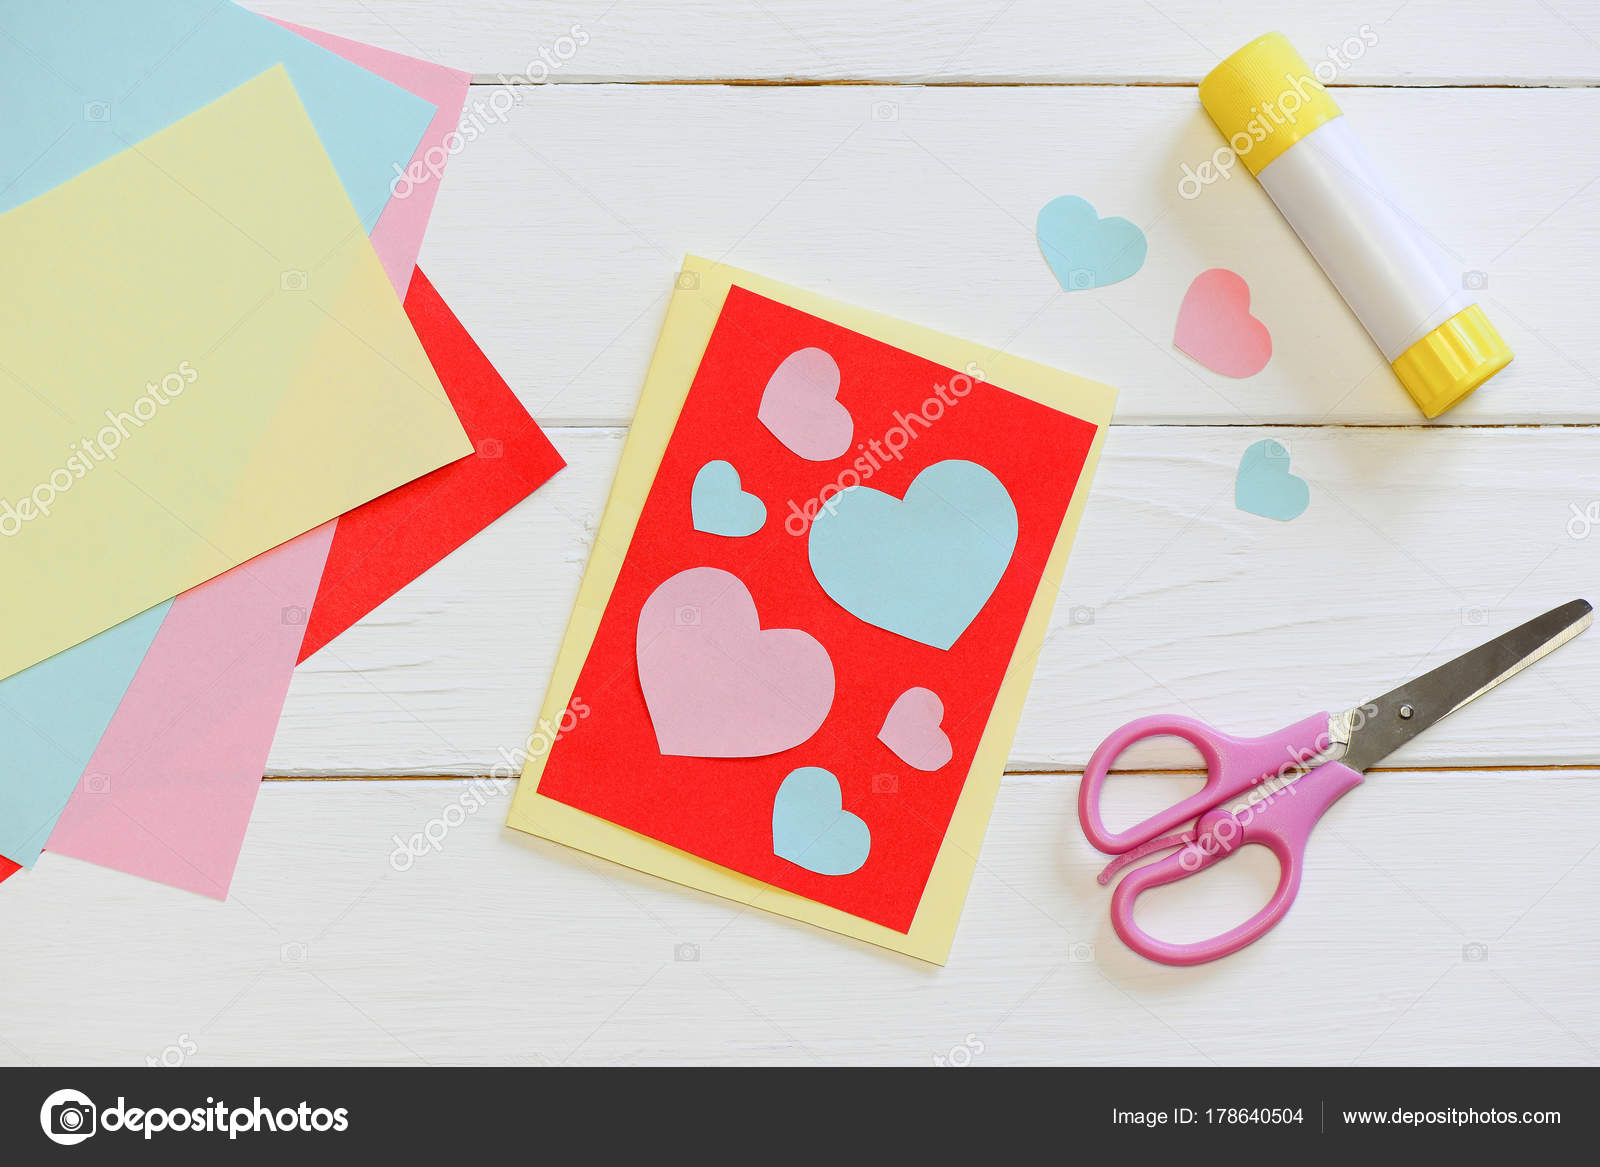 Creative Ideas For Making Greeting Cards Part - 28: Creative Idea Make Greeting Card Simple Greeting Card Design U2014 Stock Photo